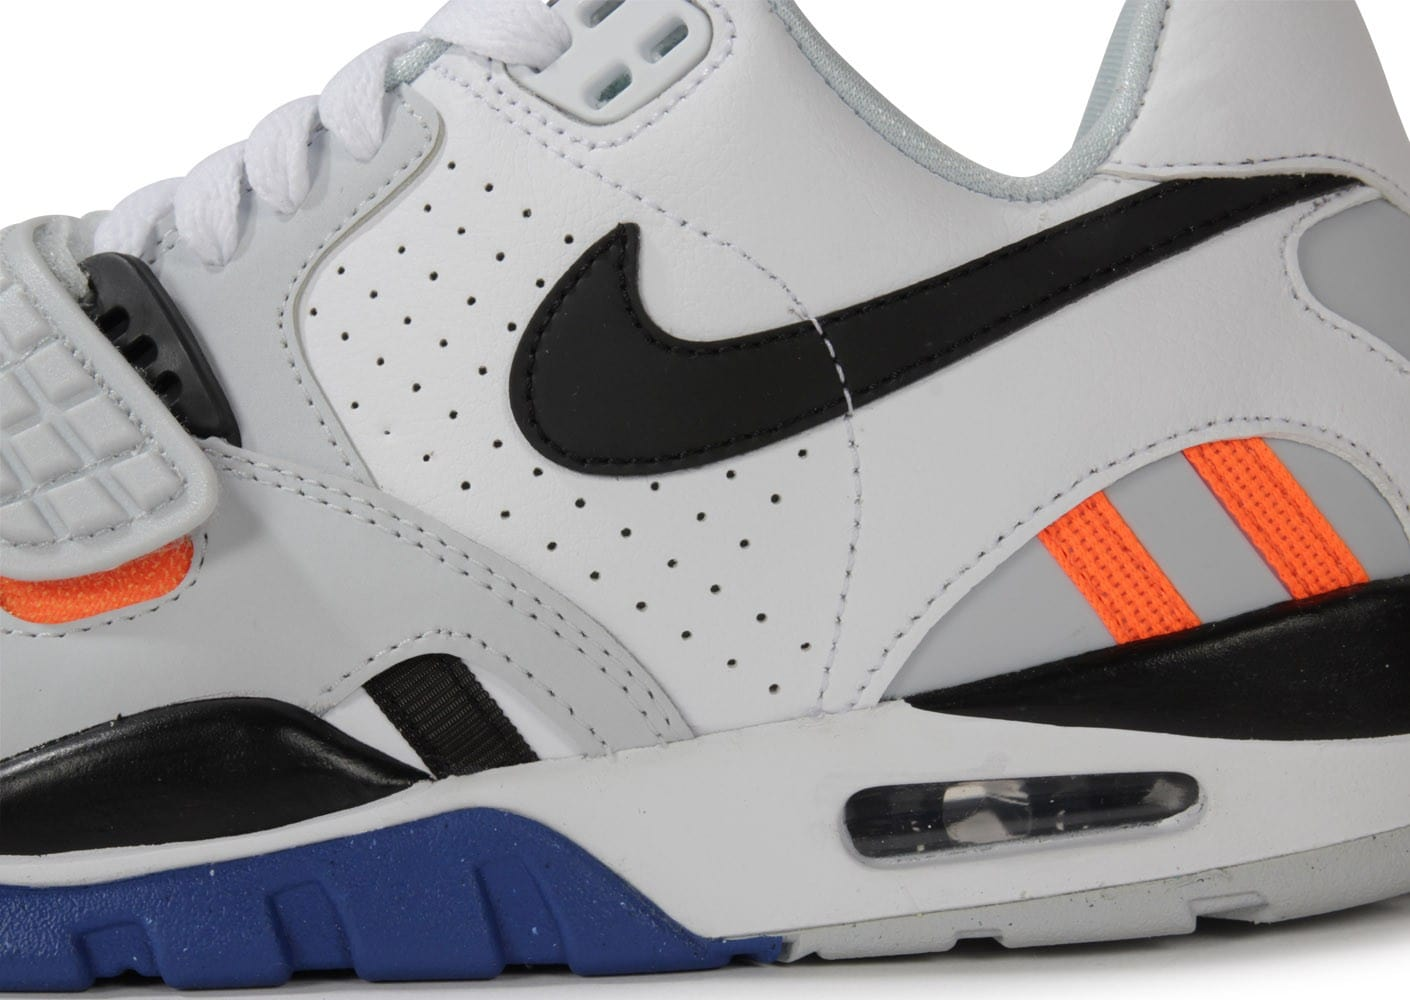 hot sale online 499f8 f1c3f ... Chaussures Nike Air Trainer Sc Ii Low Blanche vue dessus